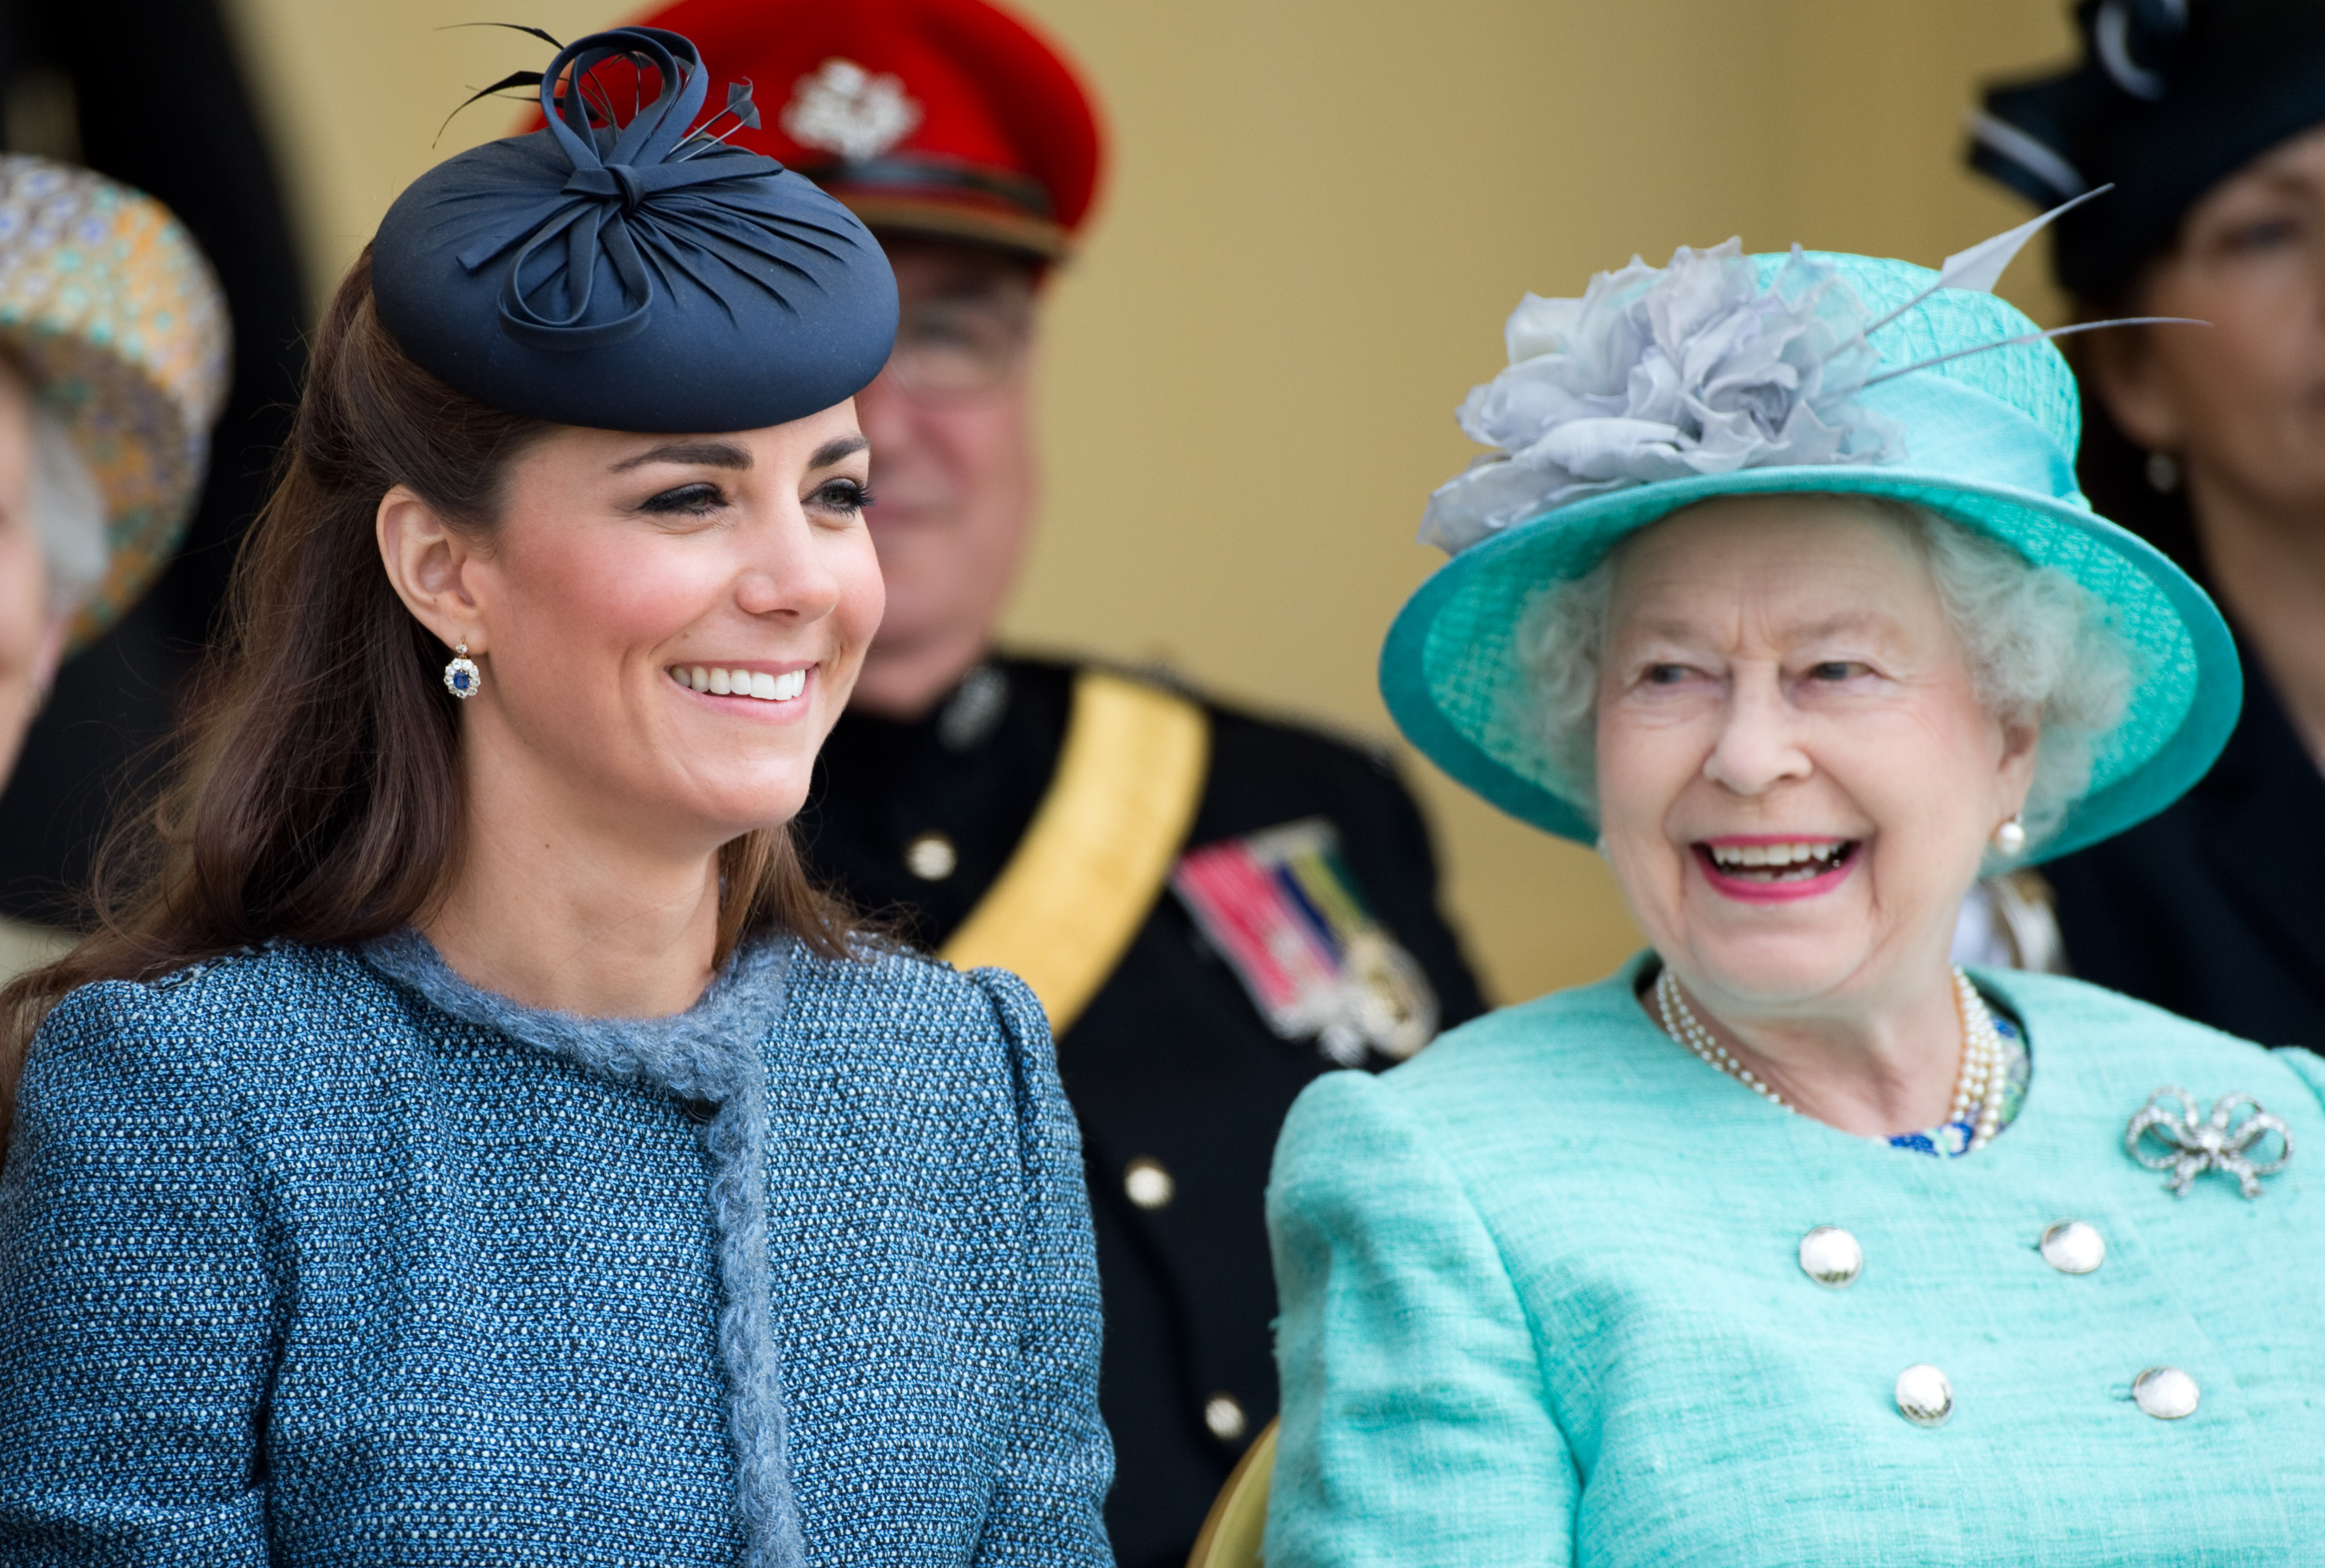 Experts claim that 'unflappable' Kate Middleton is very popular with the Queen right now